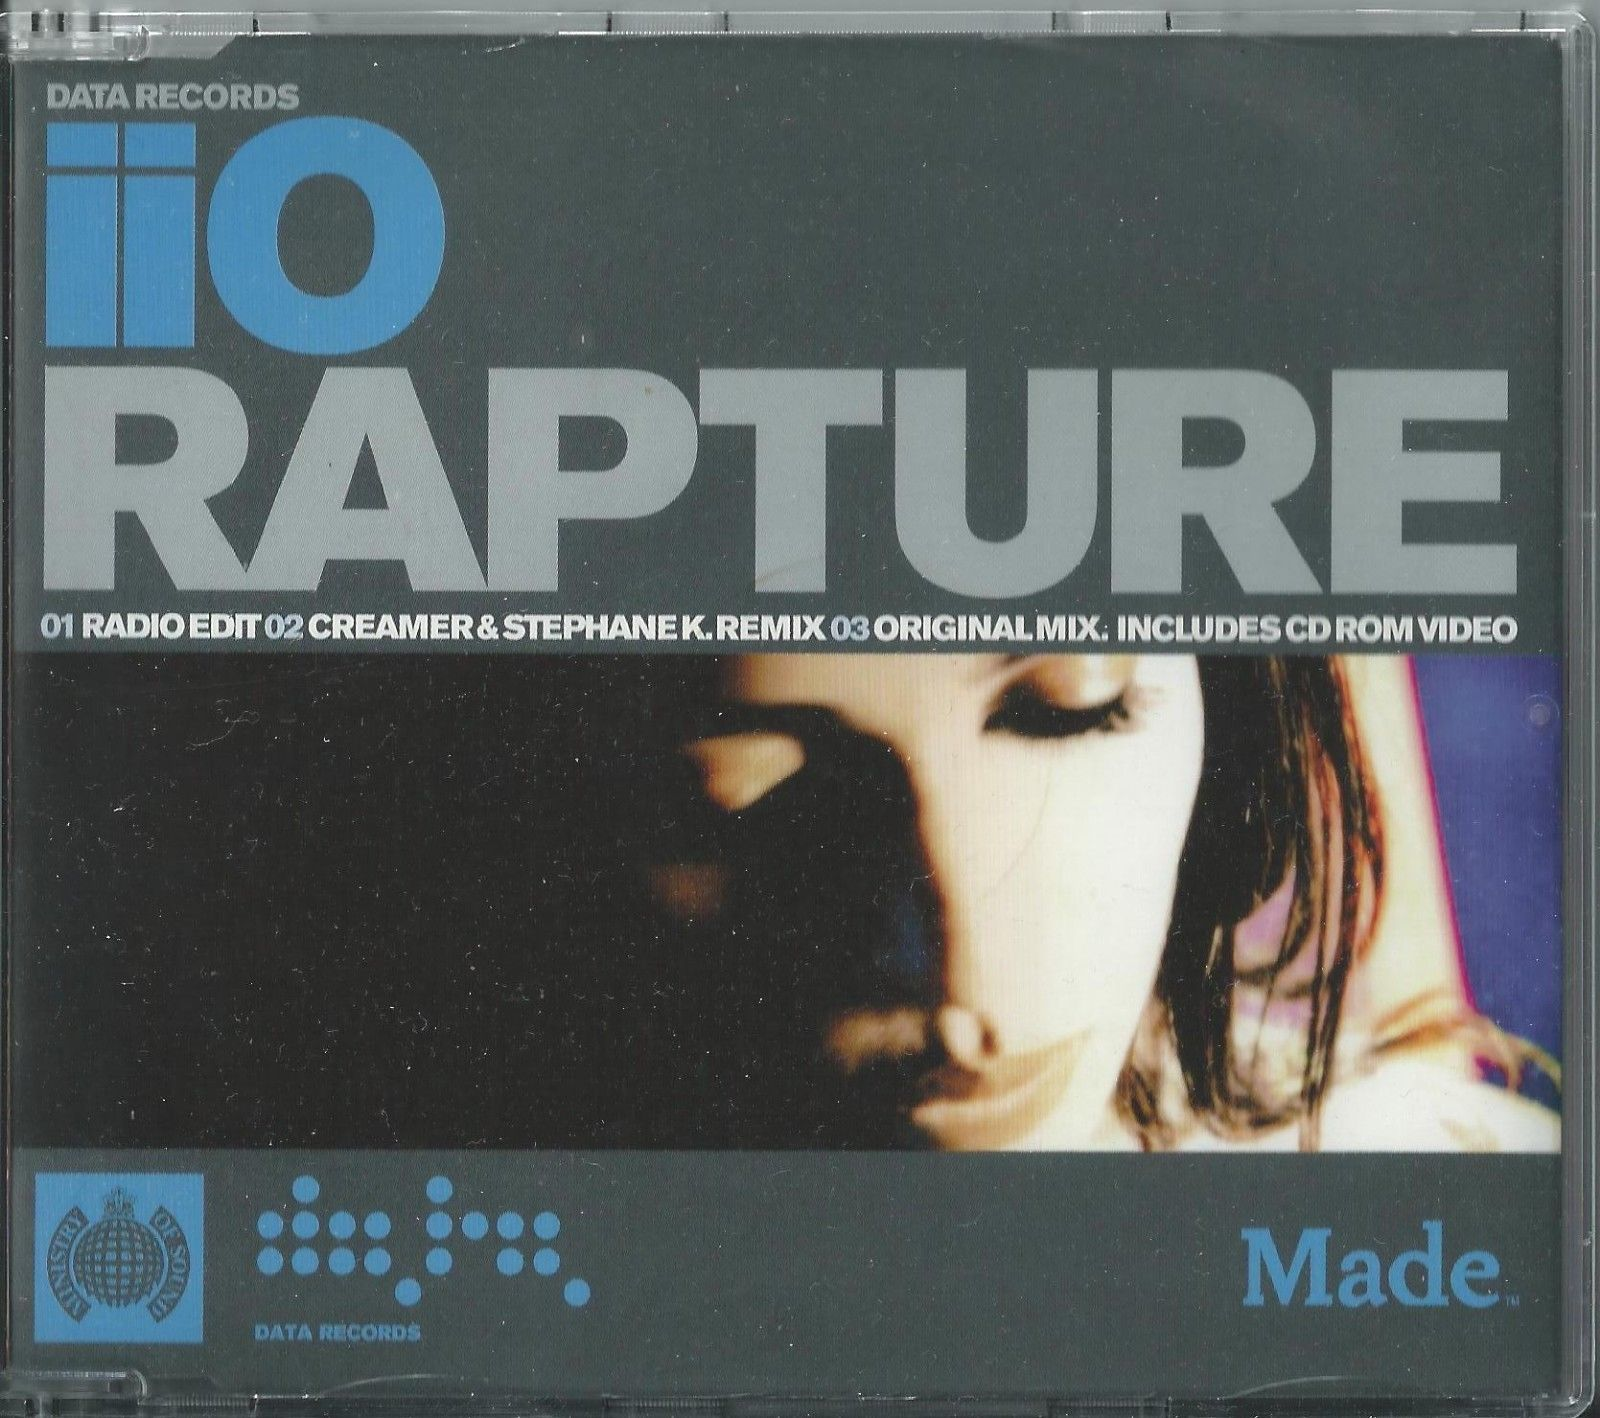 IIO - RAPTURE / (REMIXES) 2001 UK ENHANCED CD SINGLE MARKUS MOSER NADIA ALI